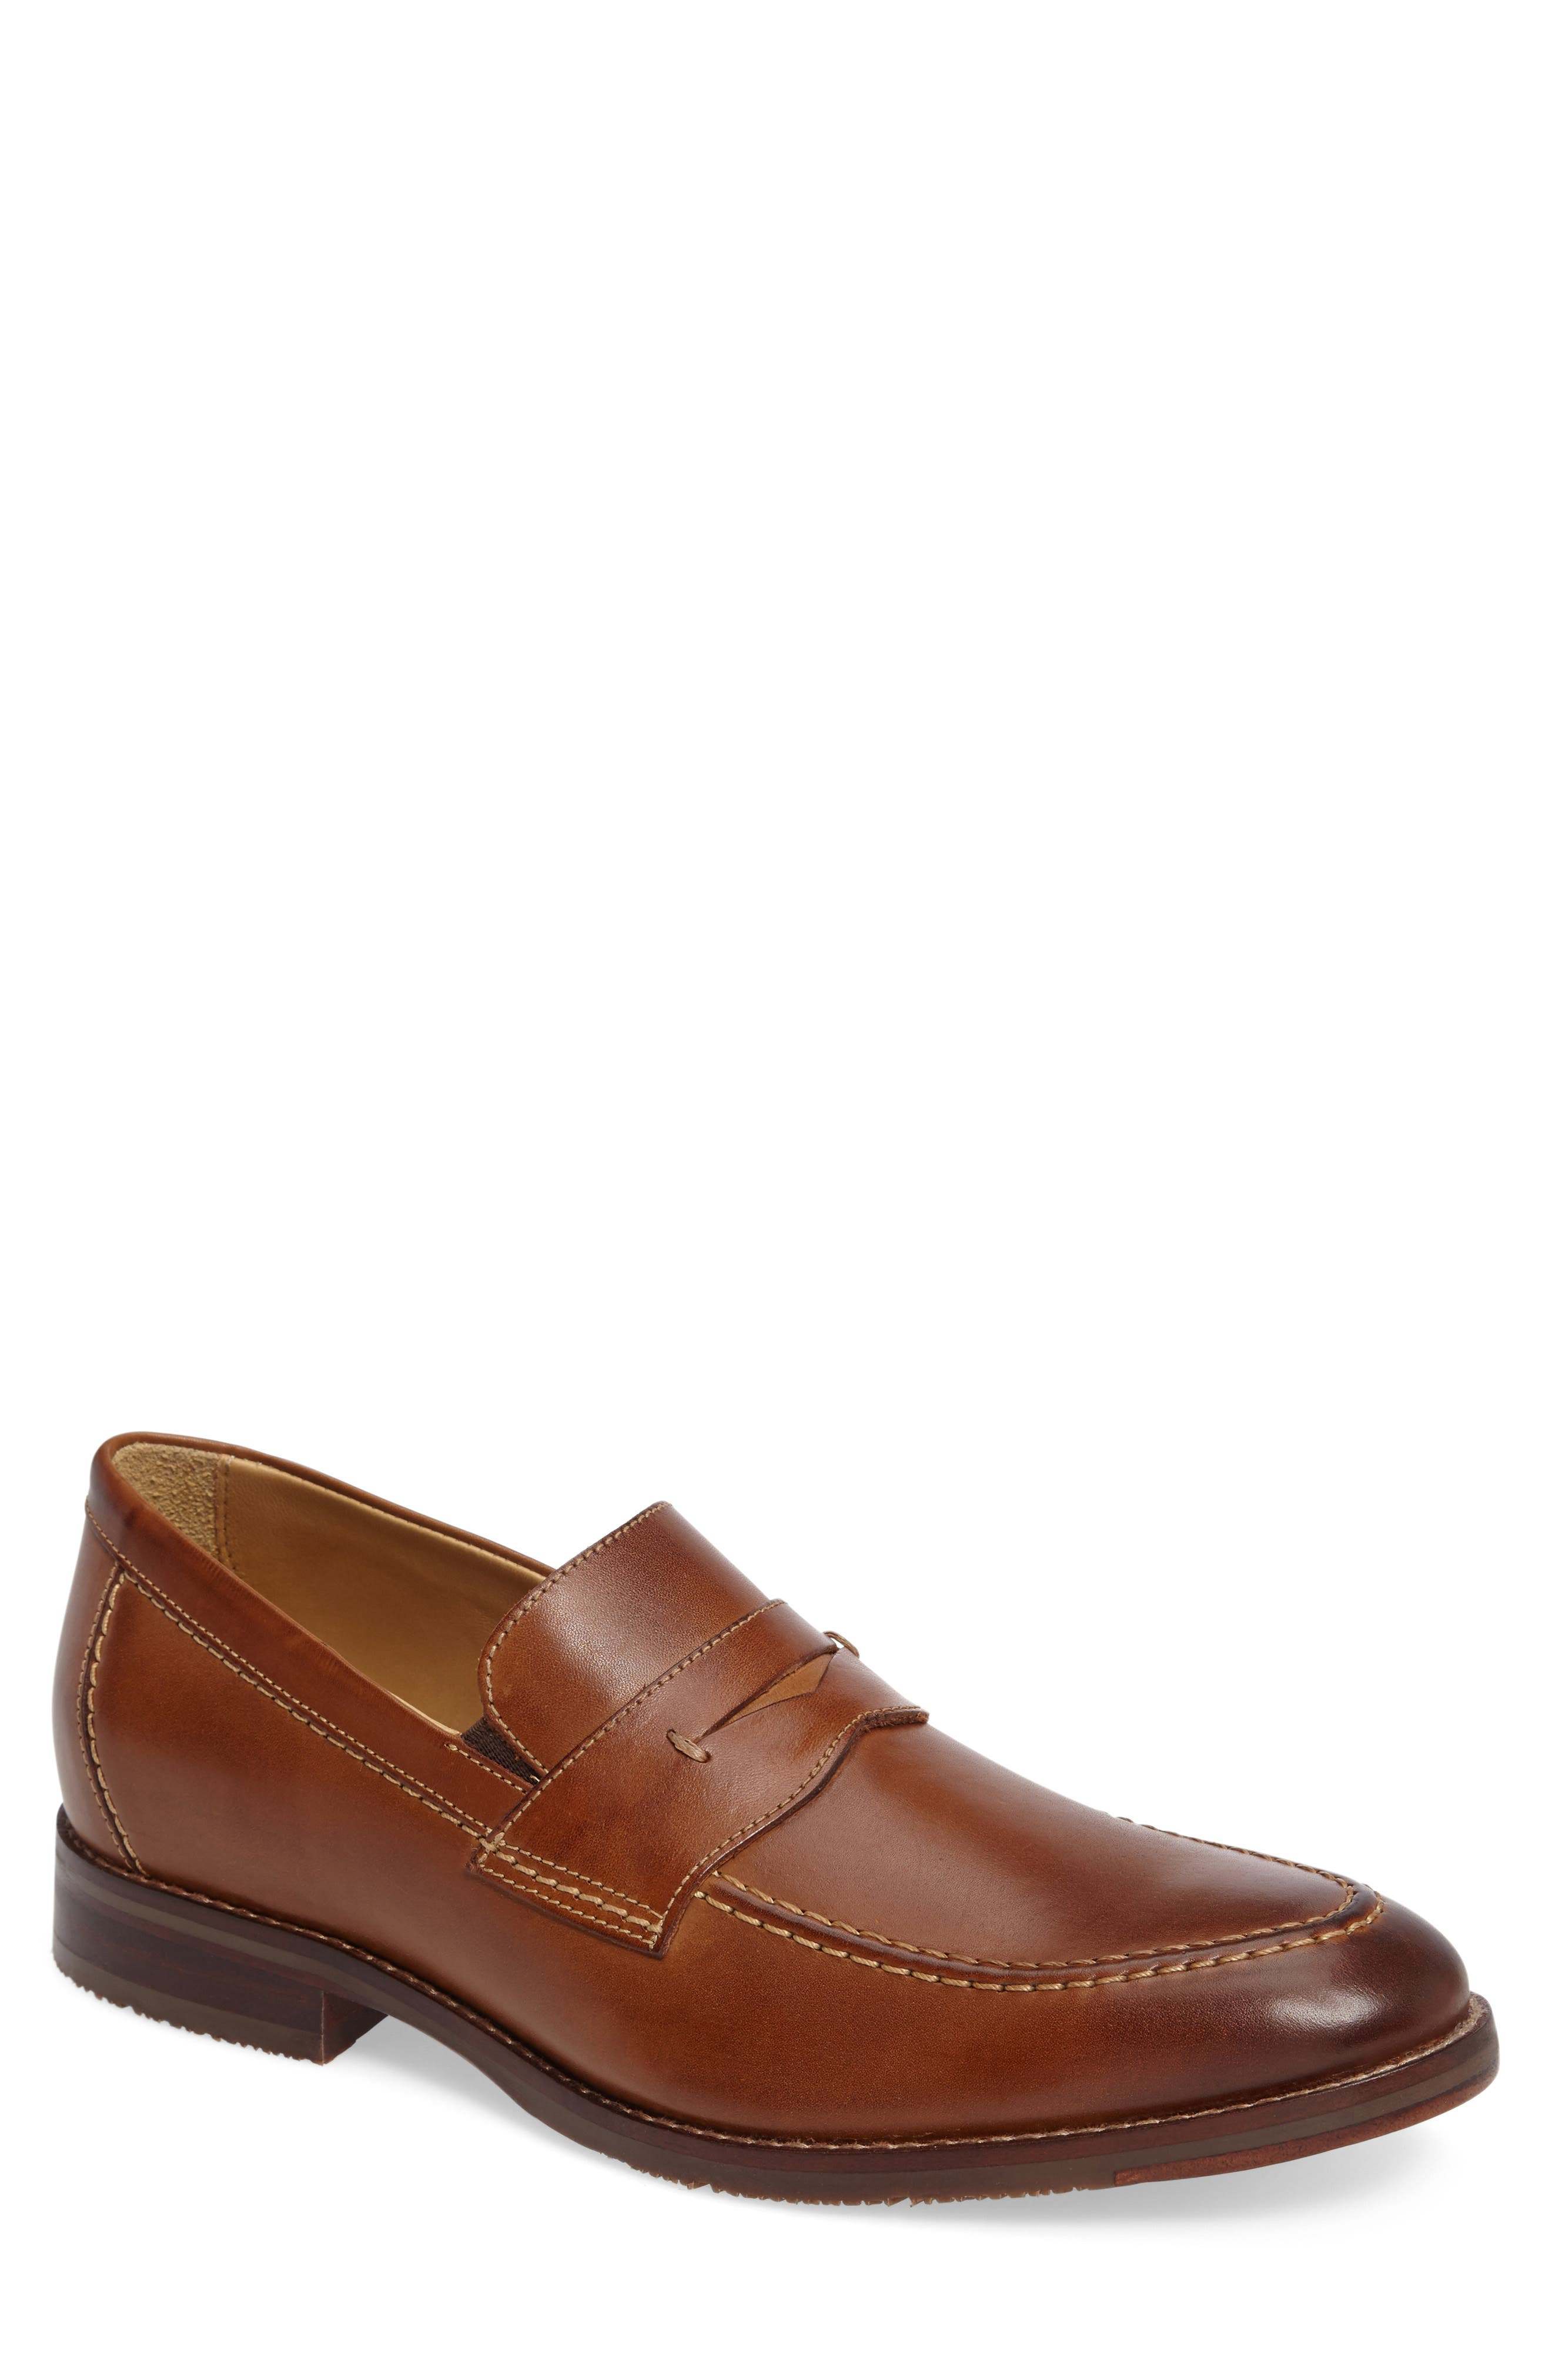 JOHNSTON & MURPHY, Garner Penny Loafer, Main thumbnail 1, color, TAN LEATHER